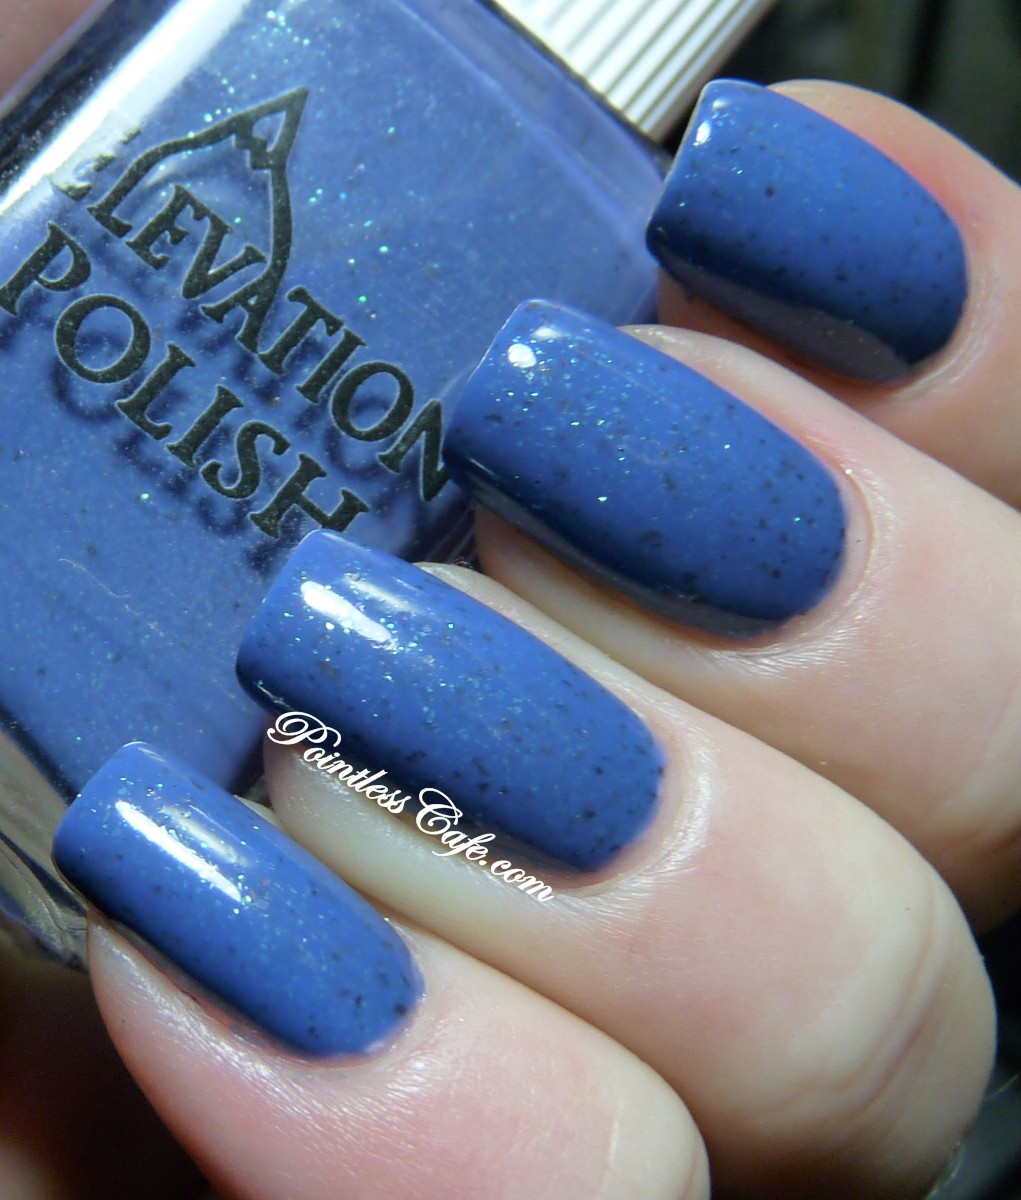 Elevation Jungfrau - Swatches and Review | Pointless Cafe